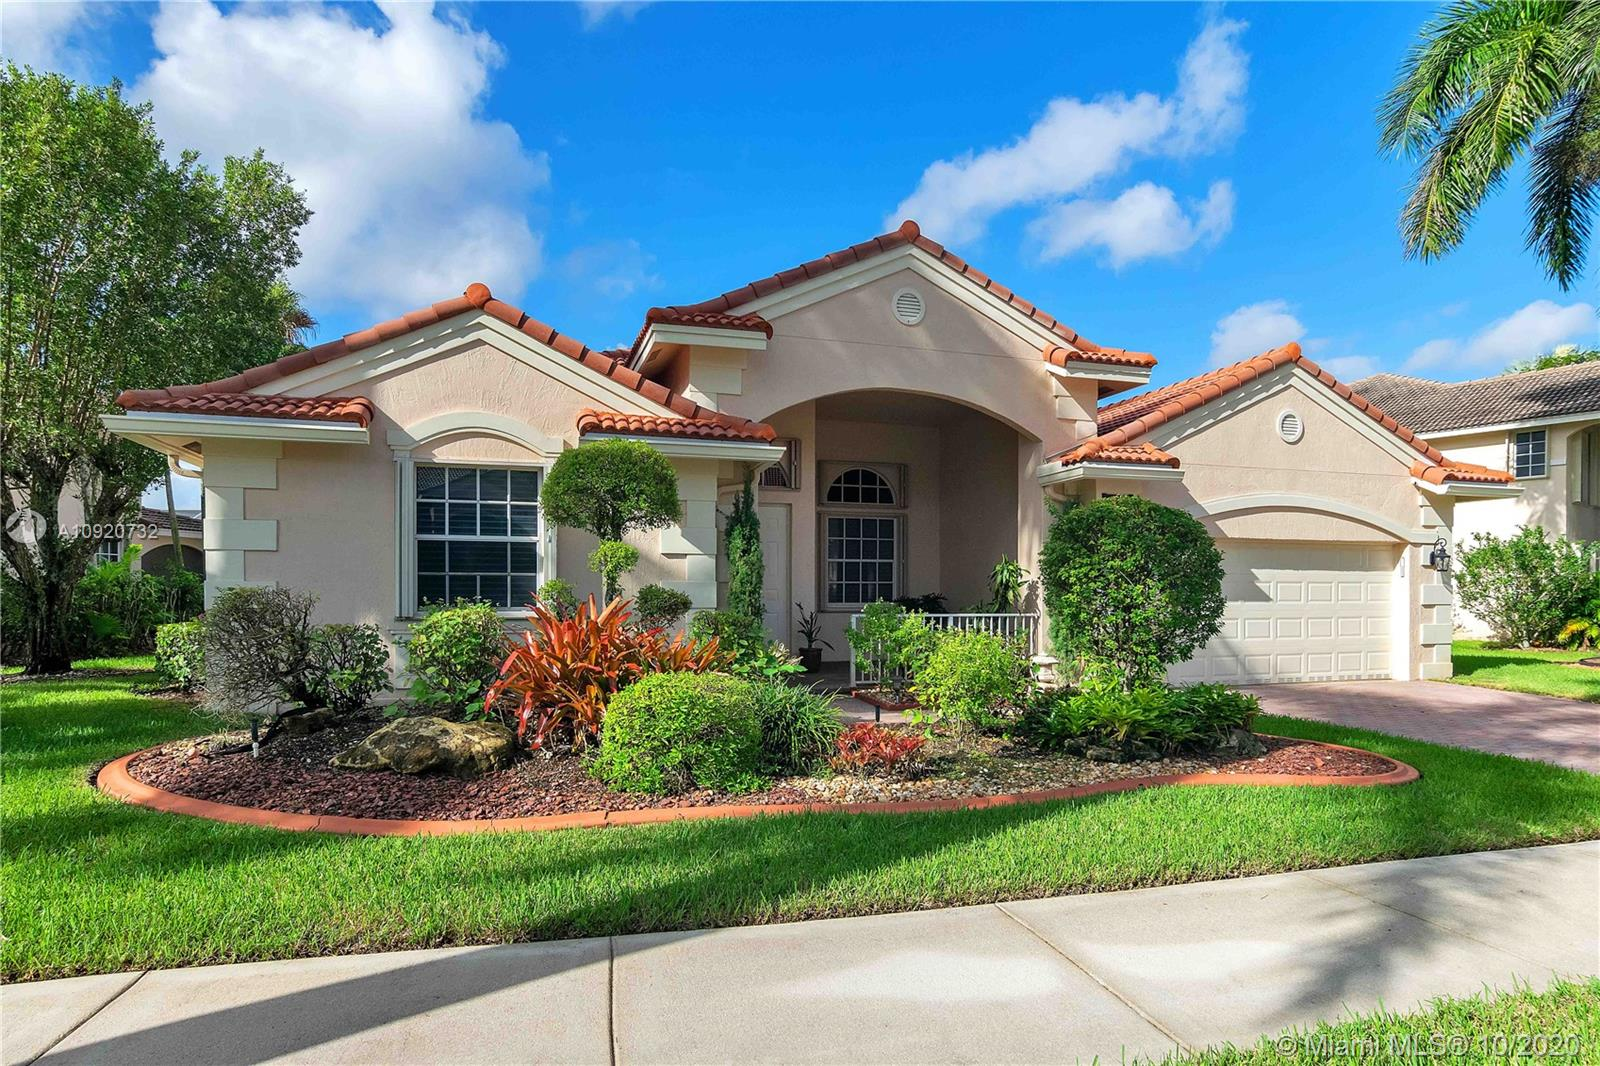 Weston Hills - 2535 Hunters Run Way, Weston, FL 33327